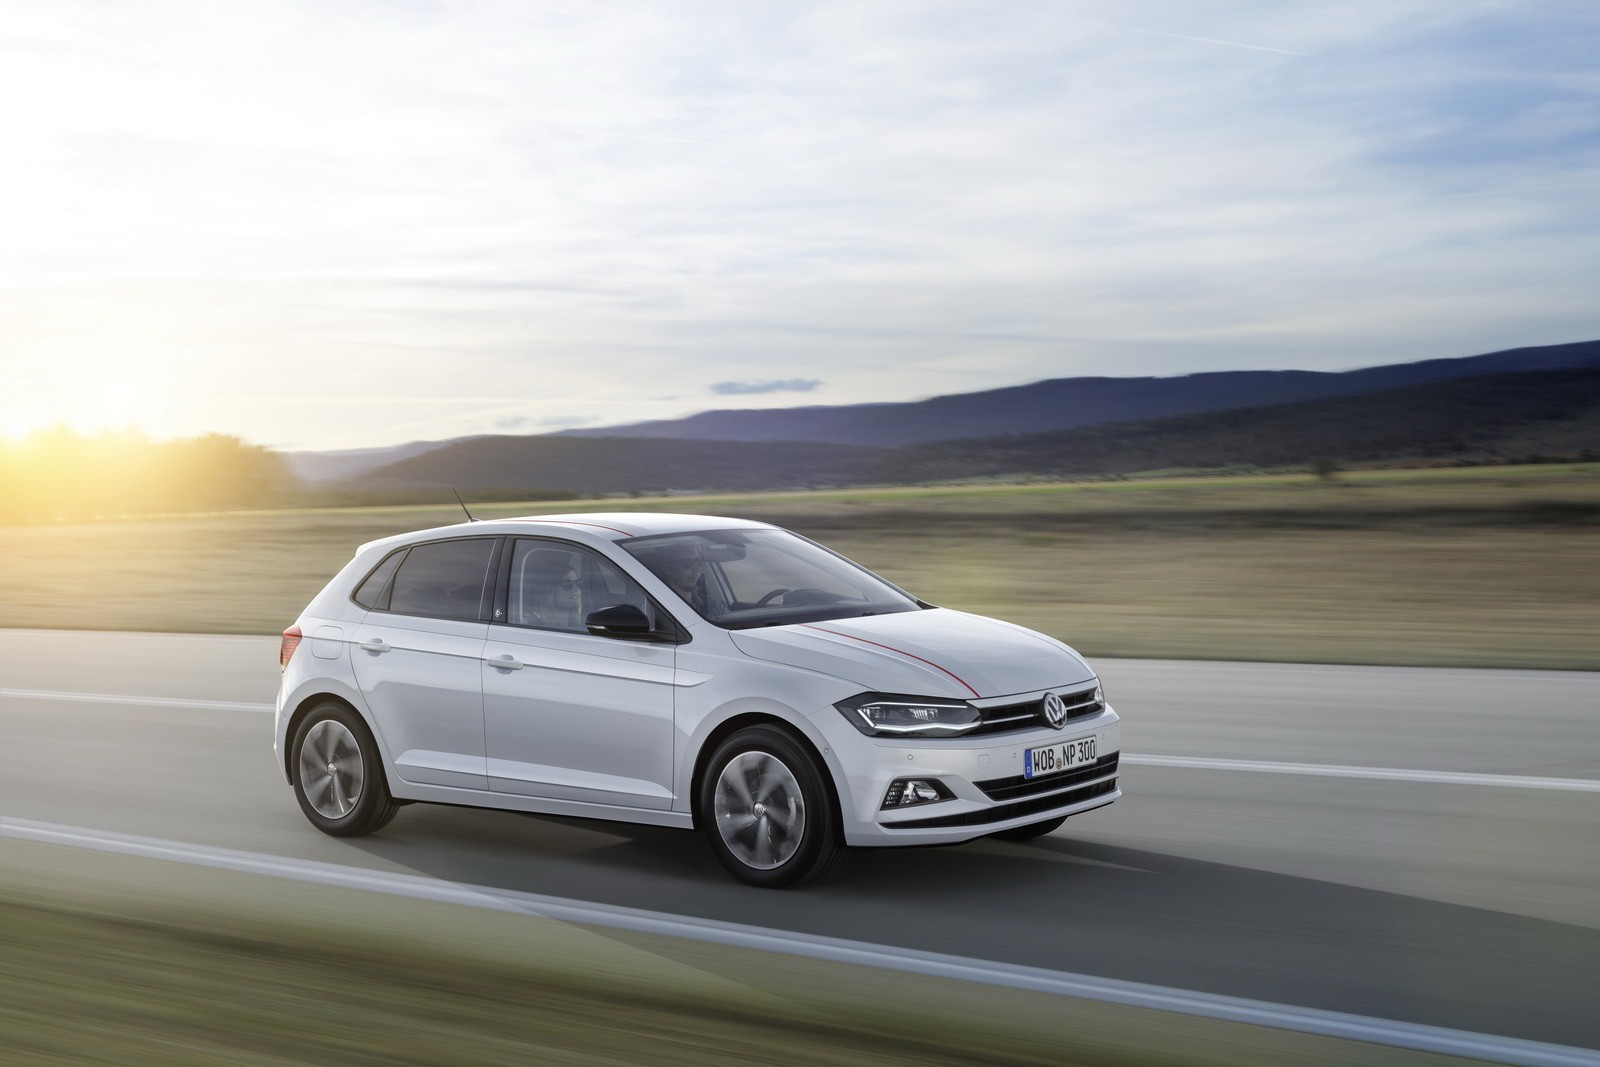 New 2018 volkswagen polo revealed has coolest dash ever for Interieur polo